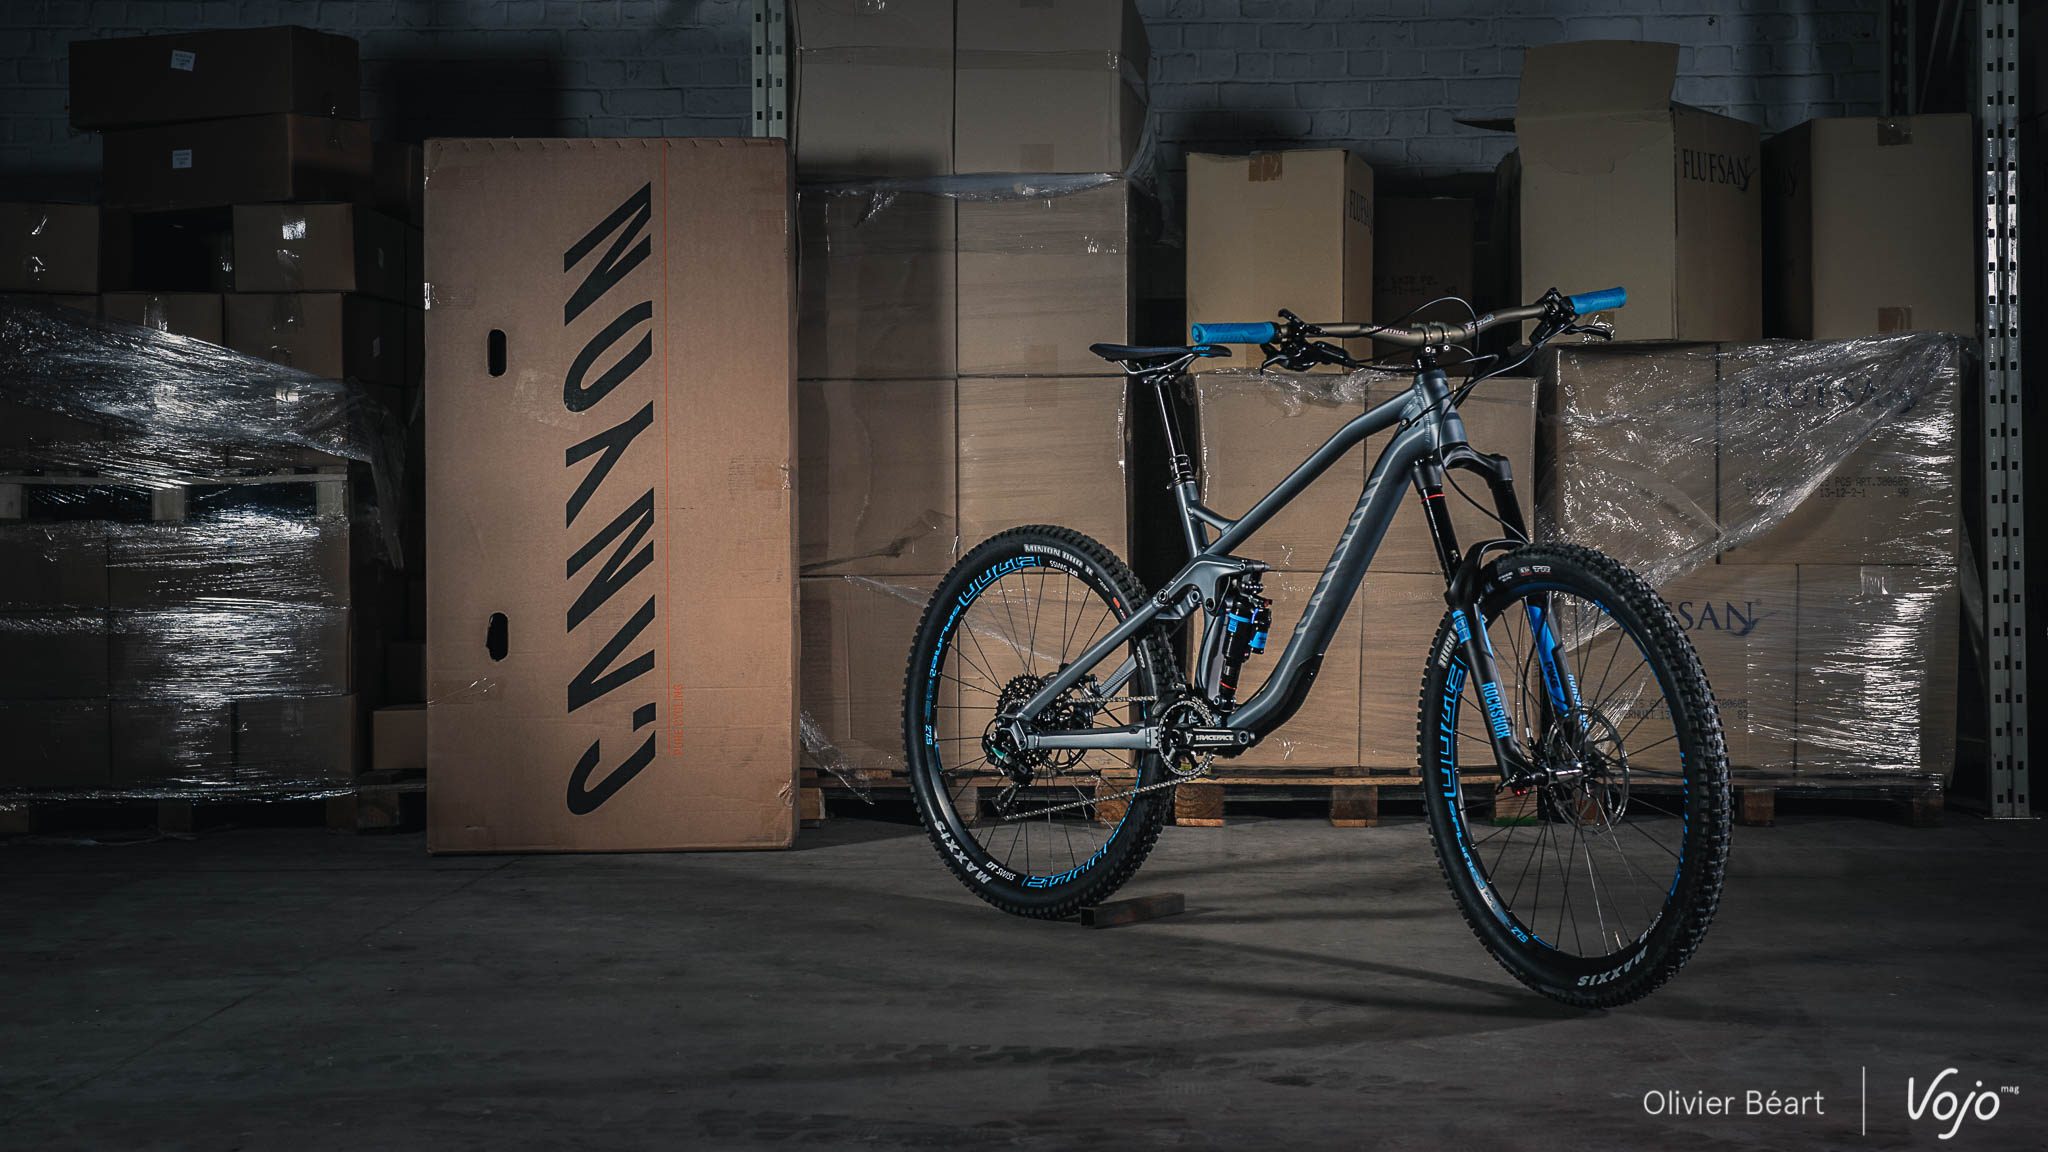 Canyon_Strive_Race_AL_7.0_Race_Test_Copyright_Beart_VojoMag-3